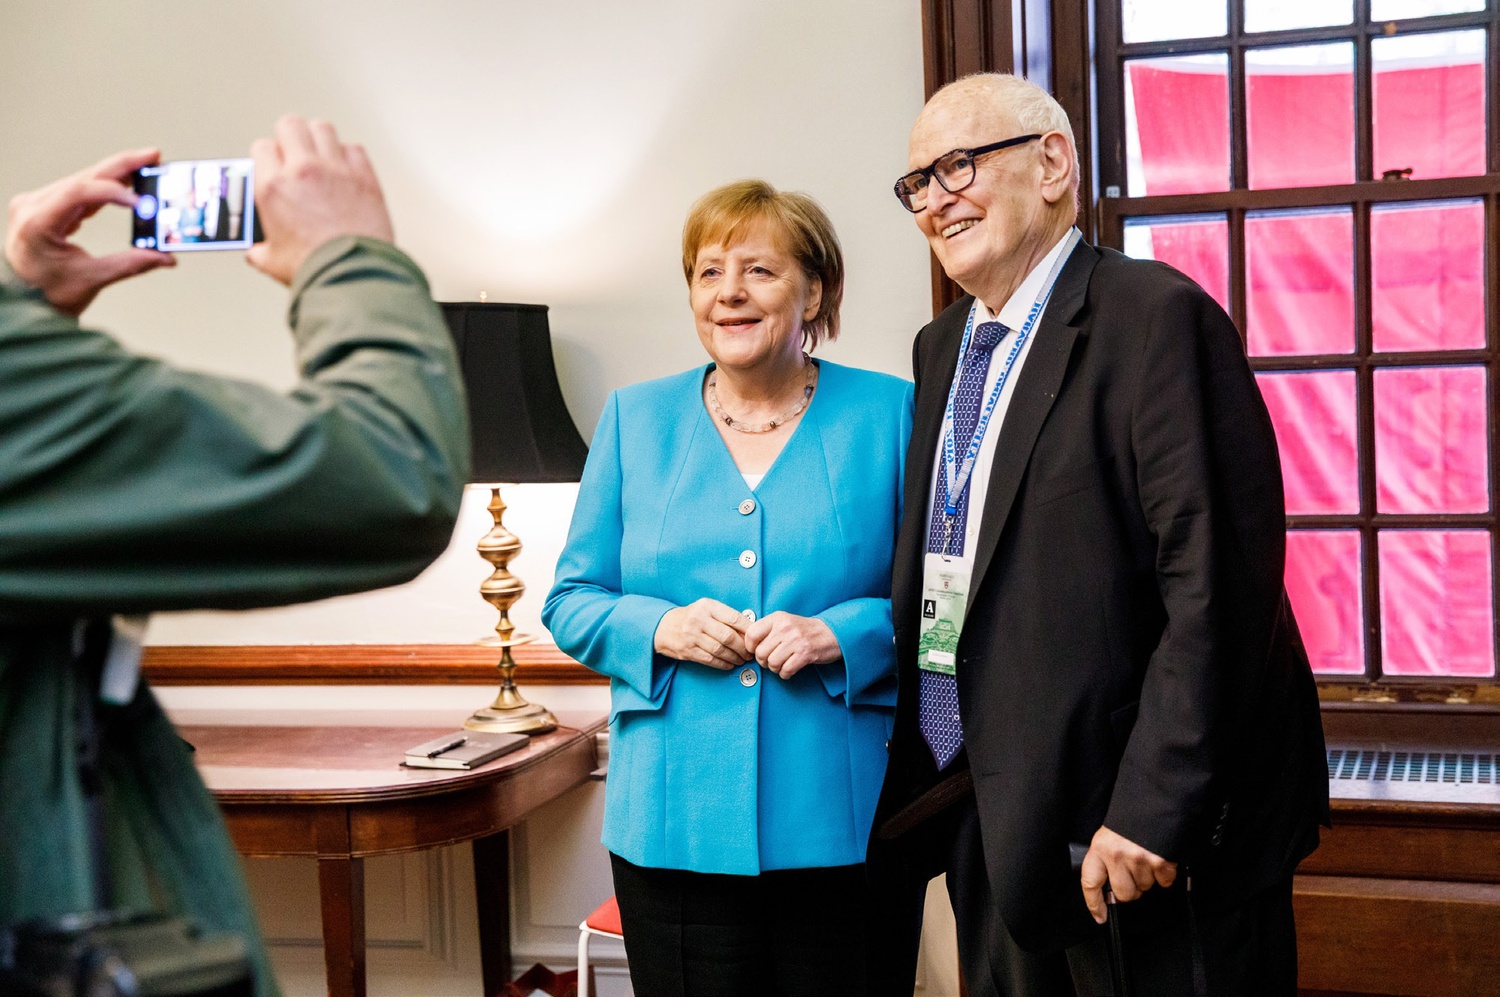 Guido Goldman and German Chancellor Angela Merkel speak at a luncheon during Harvard's 2019 Commencement.